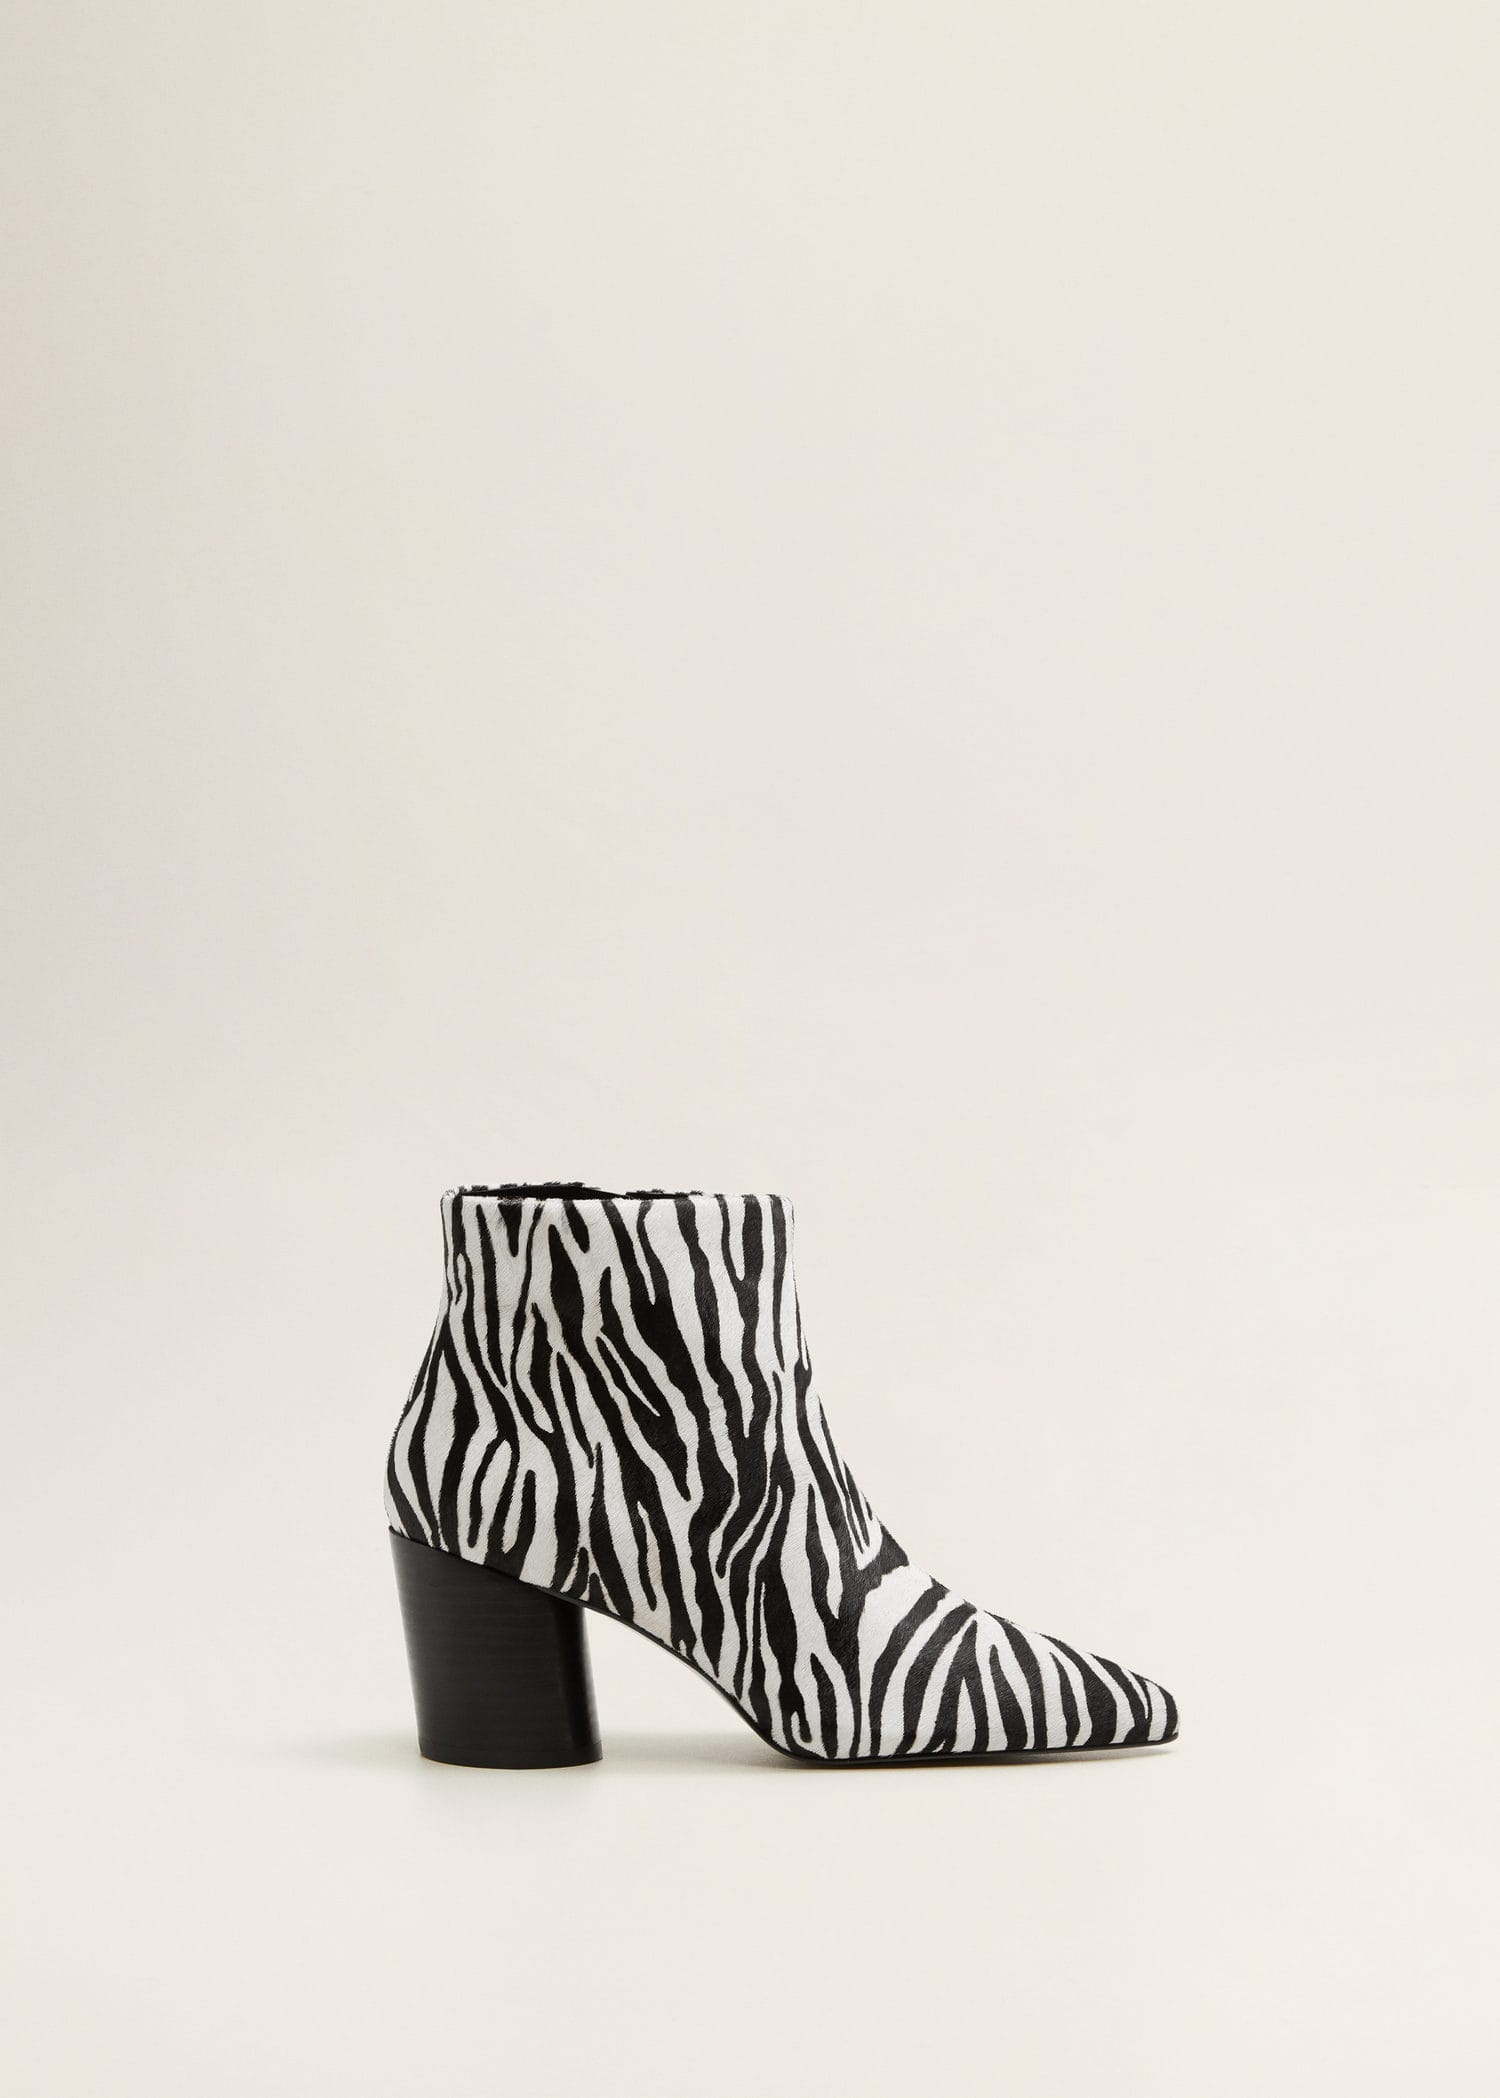 Zebra leather ankle boots